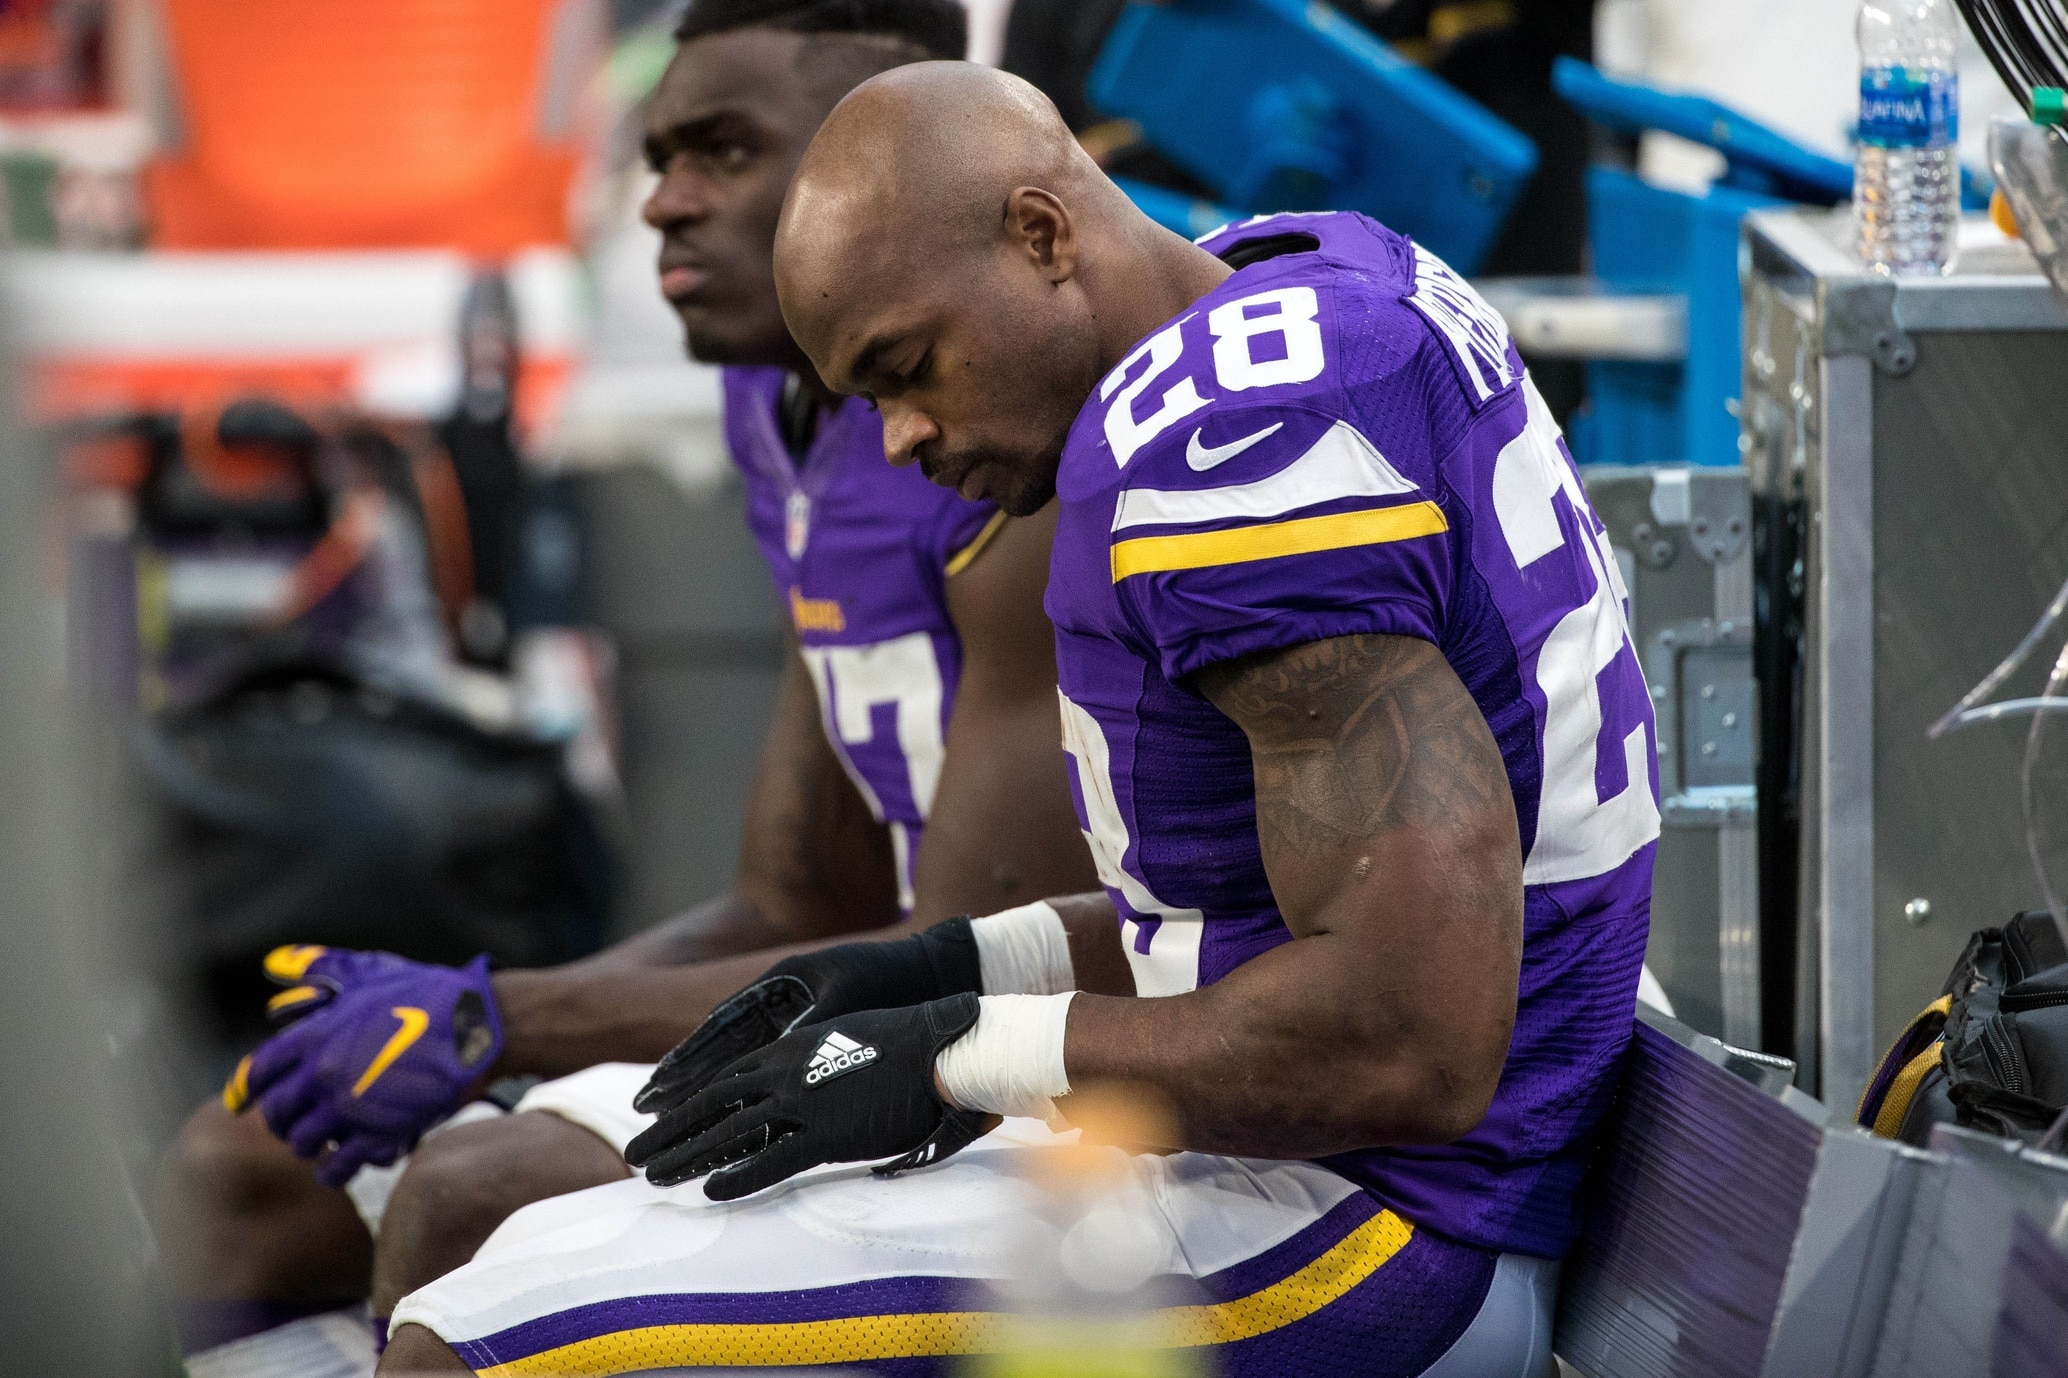 Dec 18, 2016; Minneapolis, MN, USA; Minnesota Vikings running back Adrian Peterson (28) looks on during the fourth quarter against the Indianapolis Colts at U.S. Bank Stadium. The Colts defeated the Vikings 34-6. Mandatory Credit: Brace Hemmelgarn-USA TODAY Sports